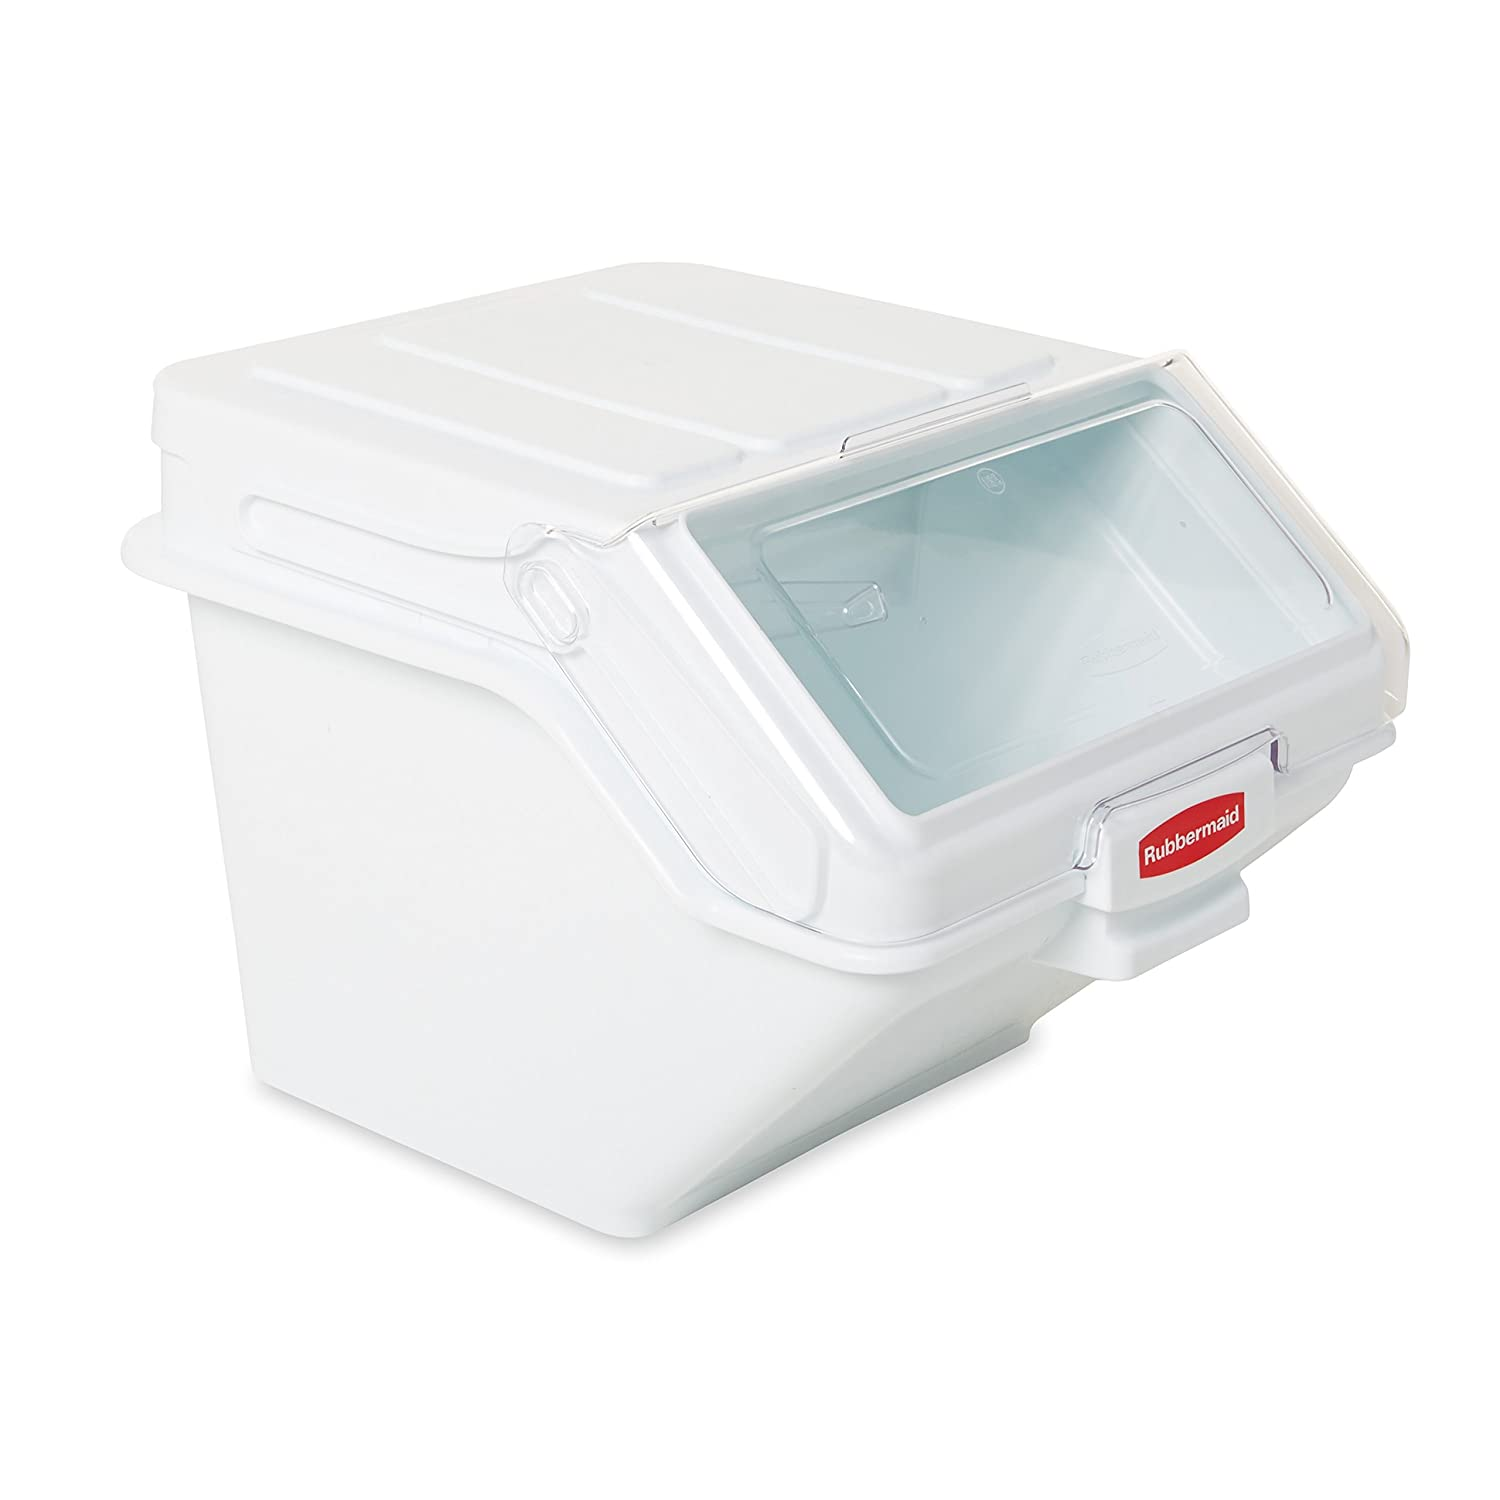 Rubbermaid Commercial ProSave Shelf Ingredient Bin with Scoop, 200-Cup, White, FG9G5800WHT